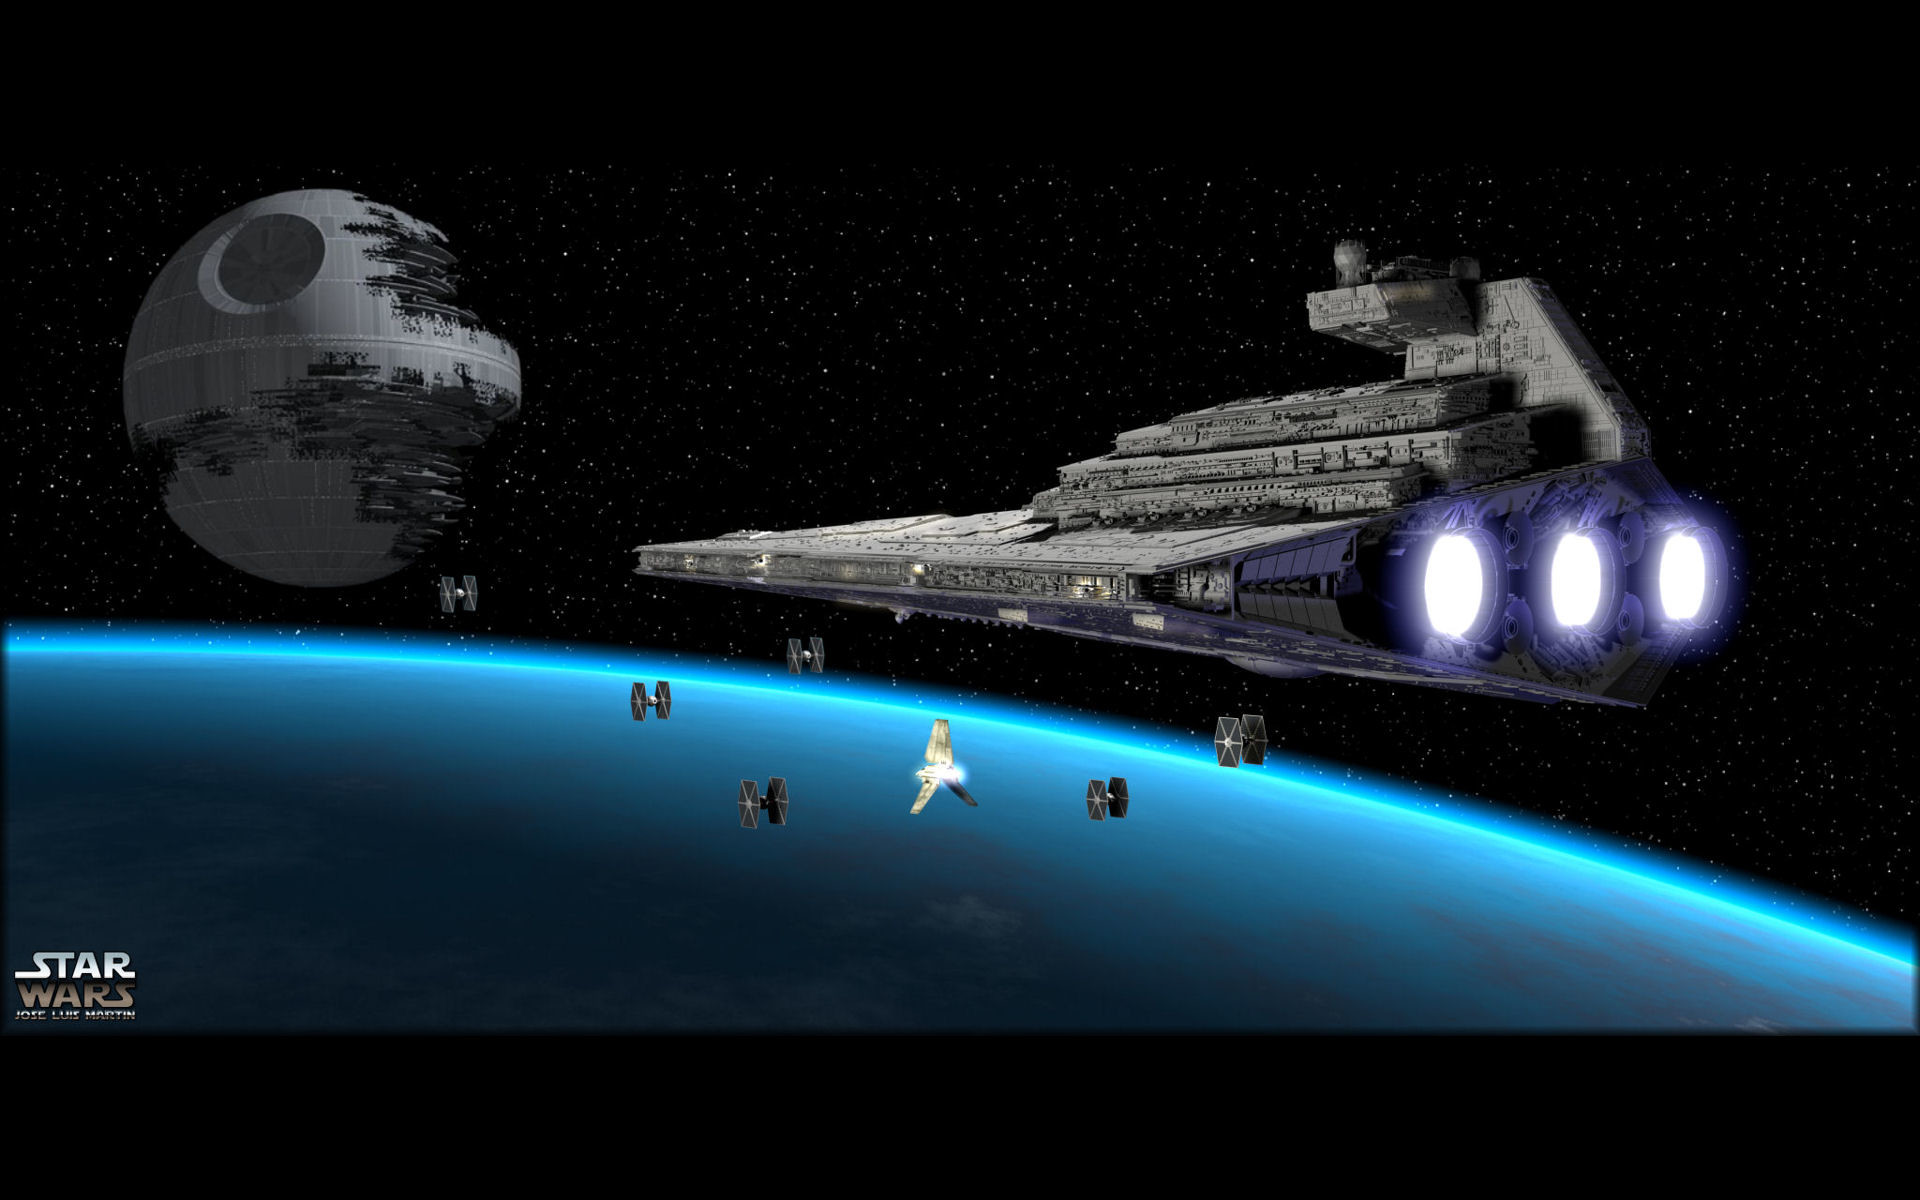 star wars space wallpaper (70+ images)